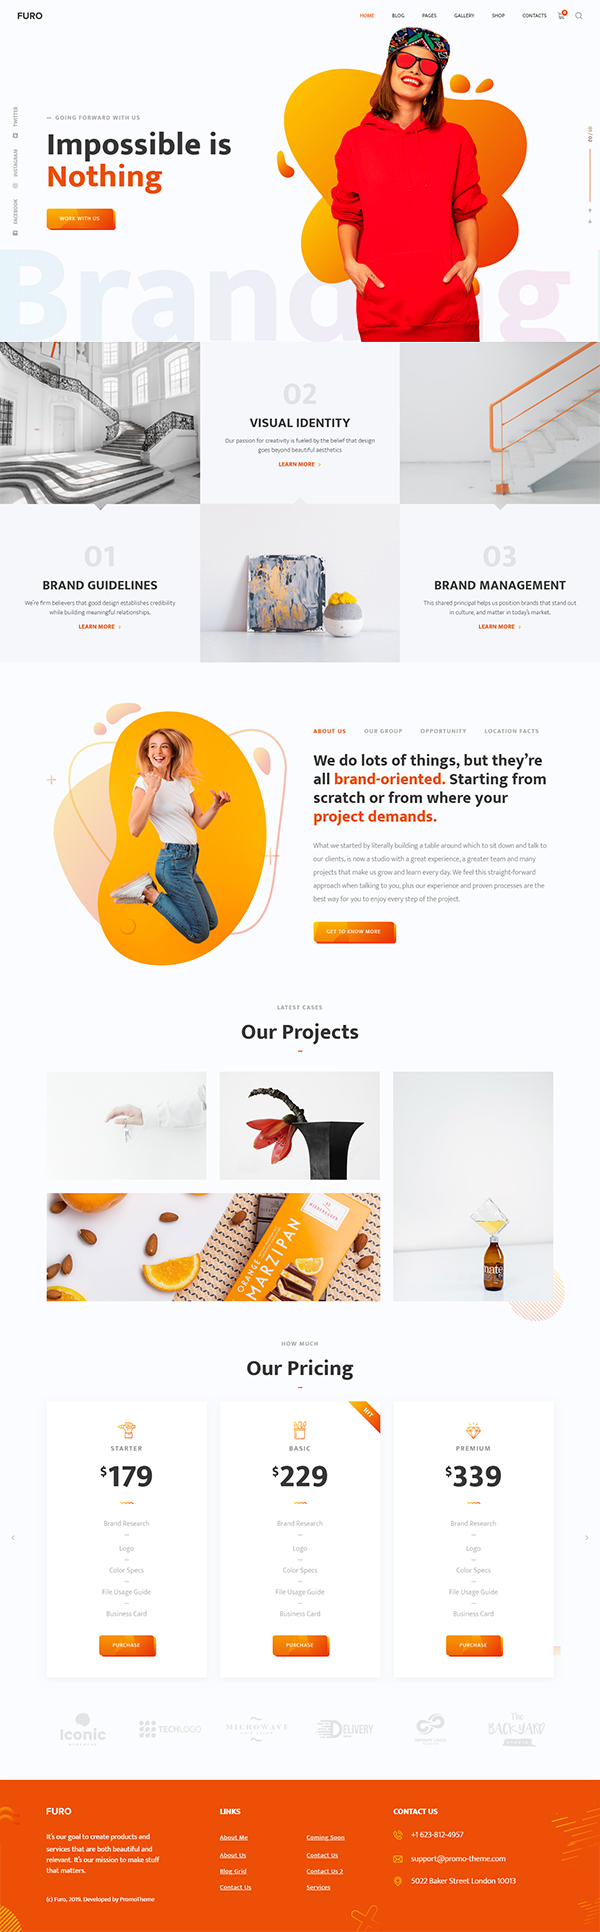 Furo - A Creative MultiPurpose WordPress Theme